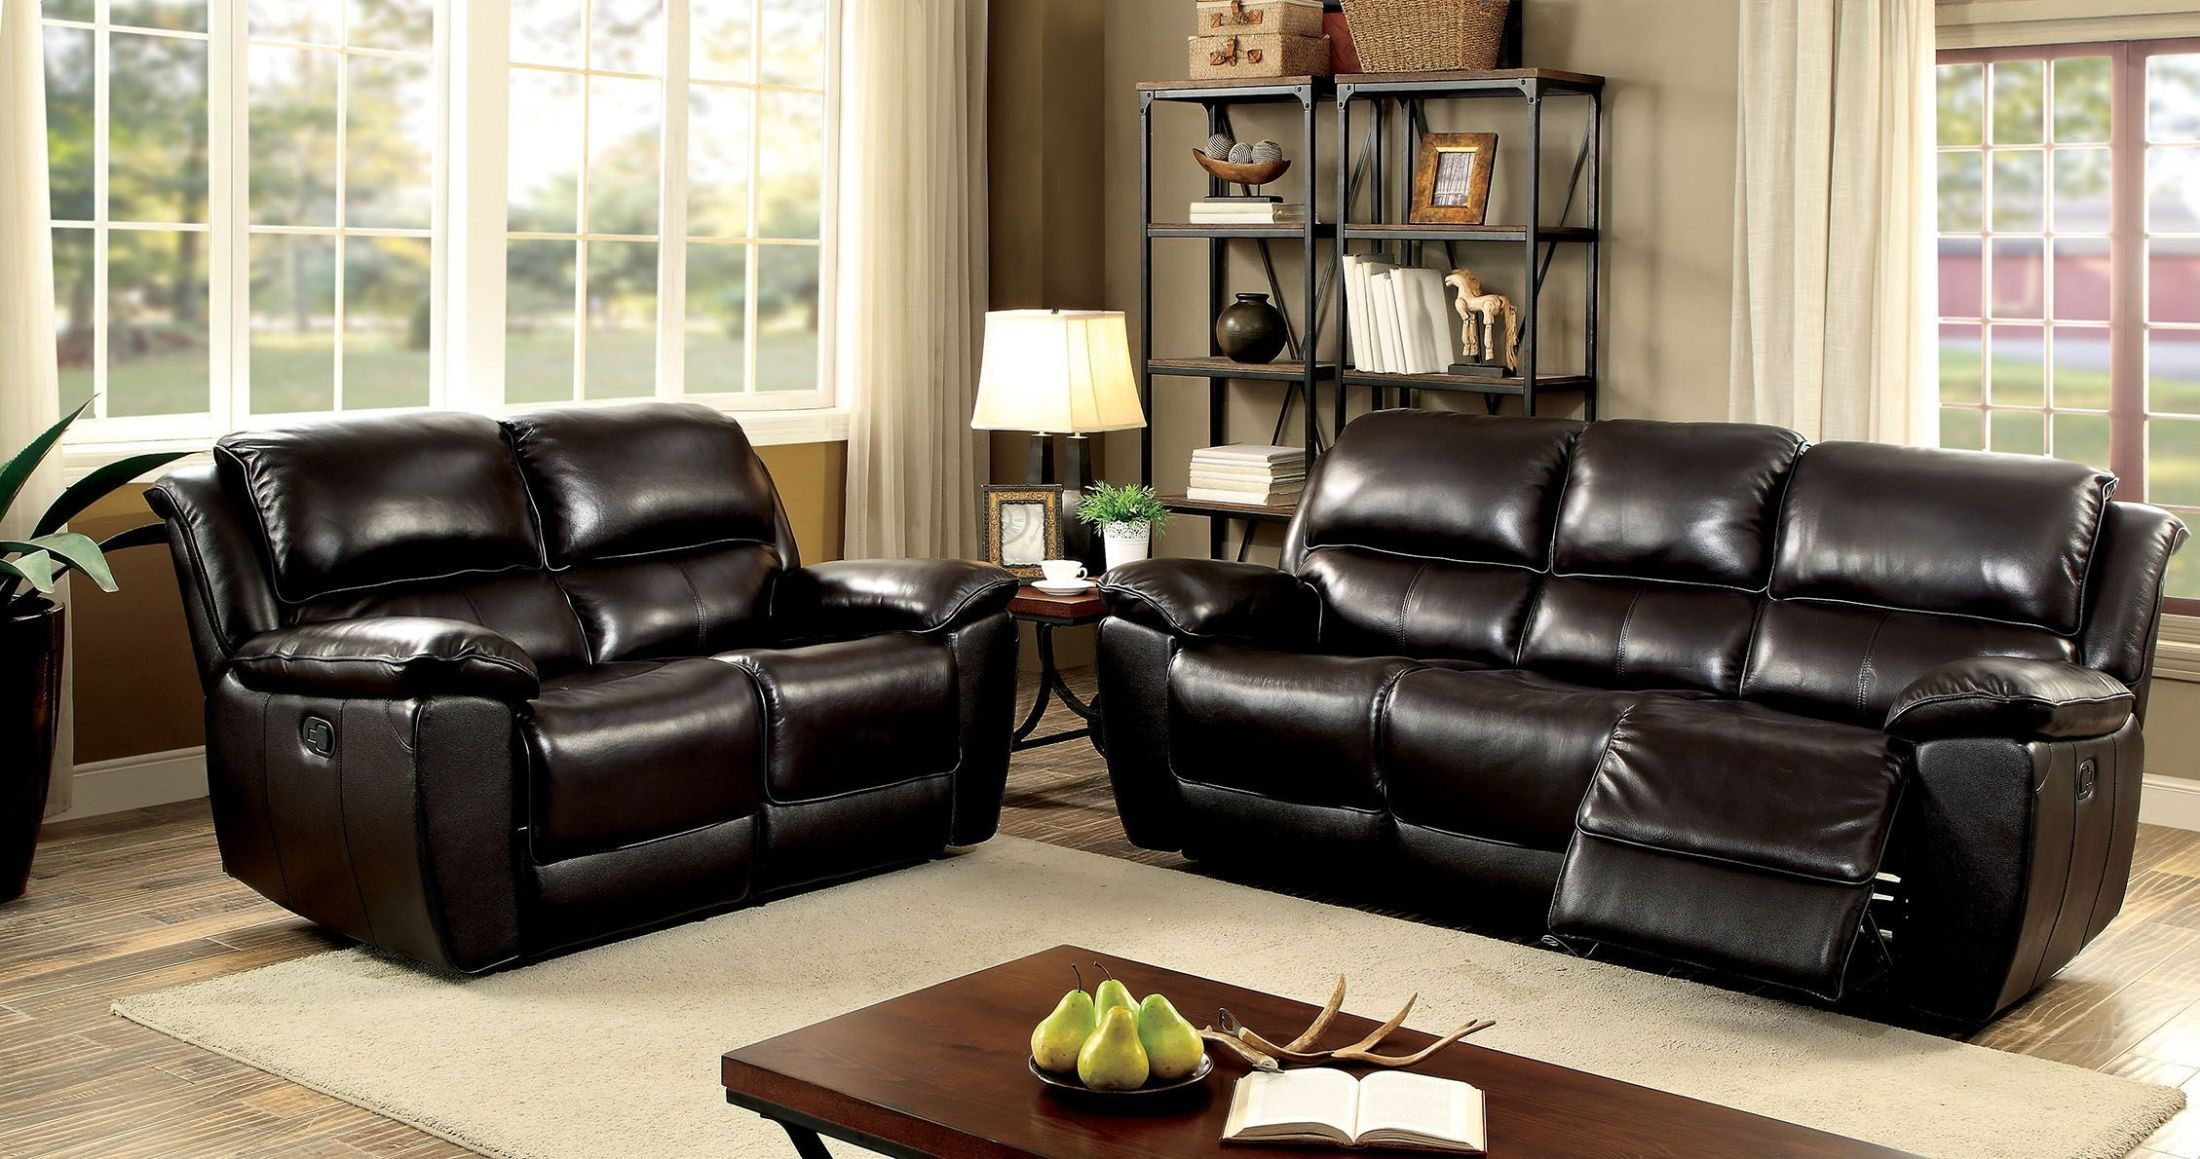 Keara dark brown reclining living room set from furniture for Dark brown living room set